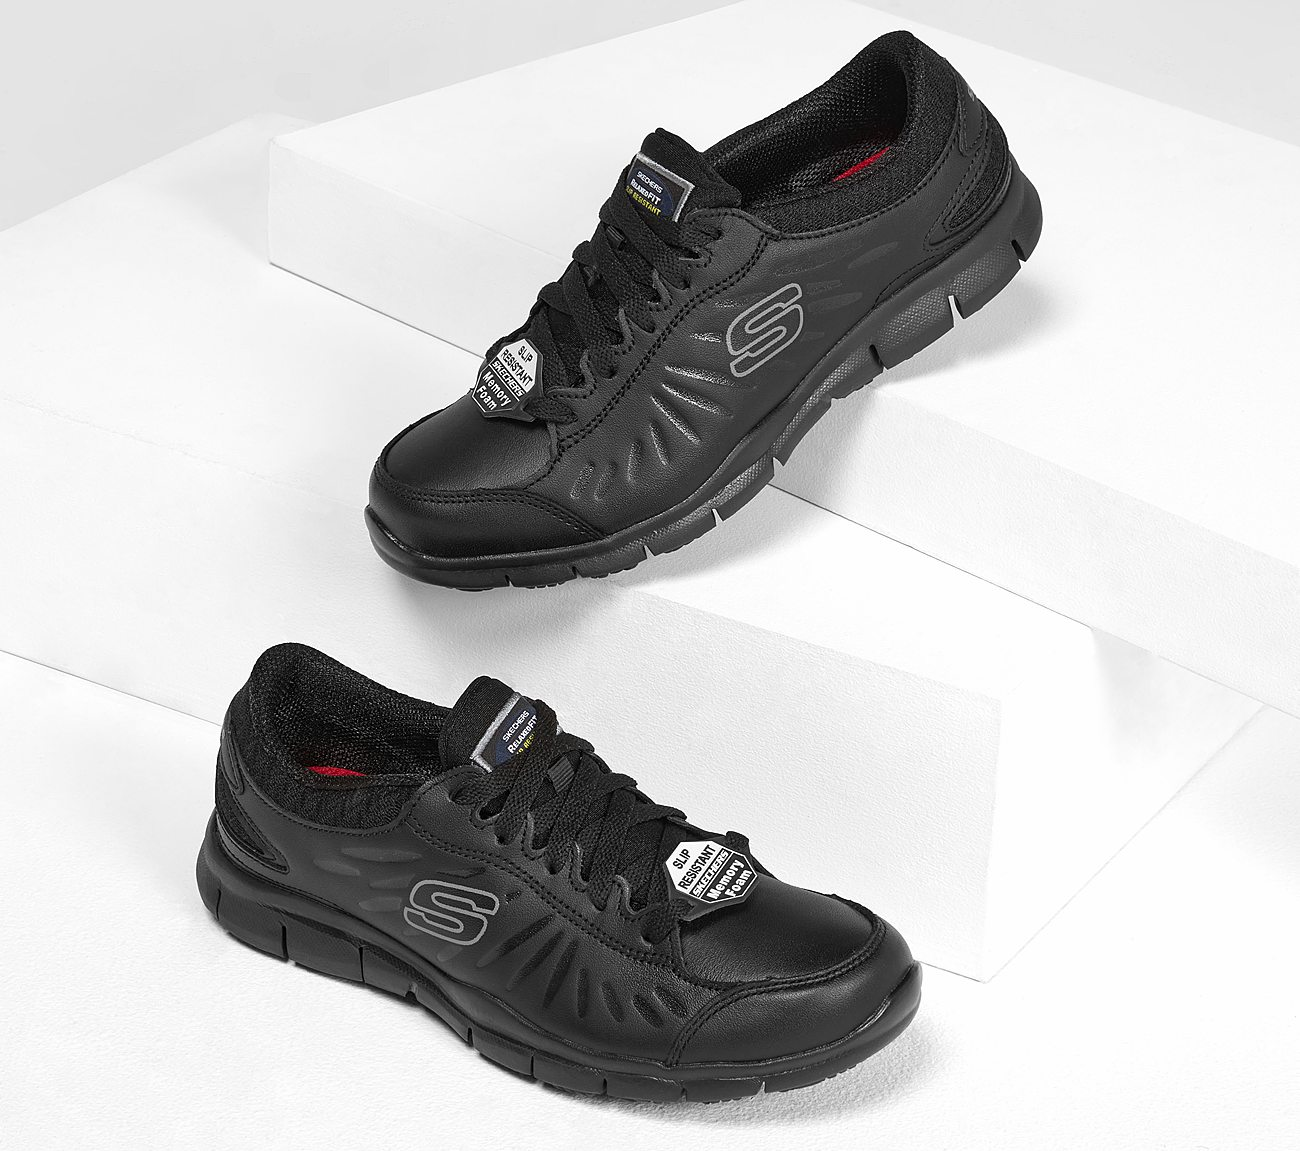 skechers non skid shoes